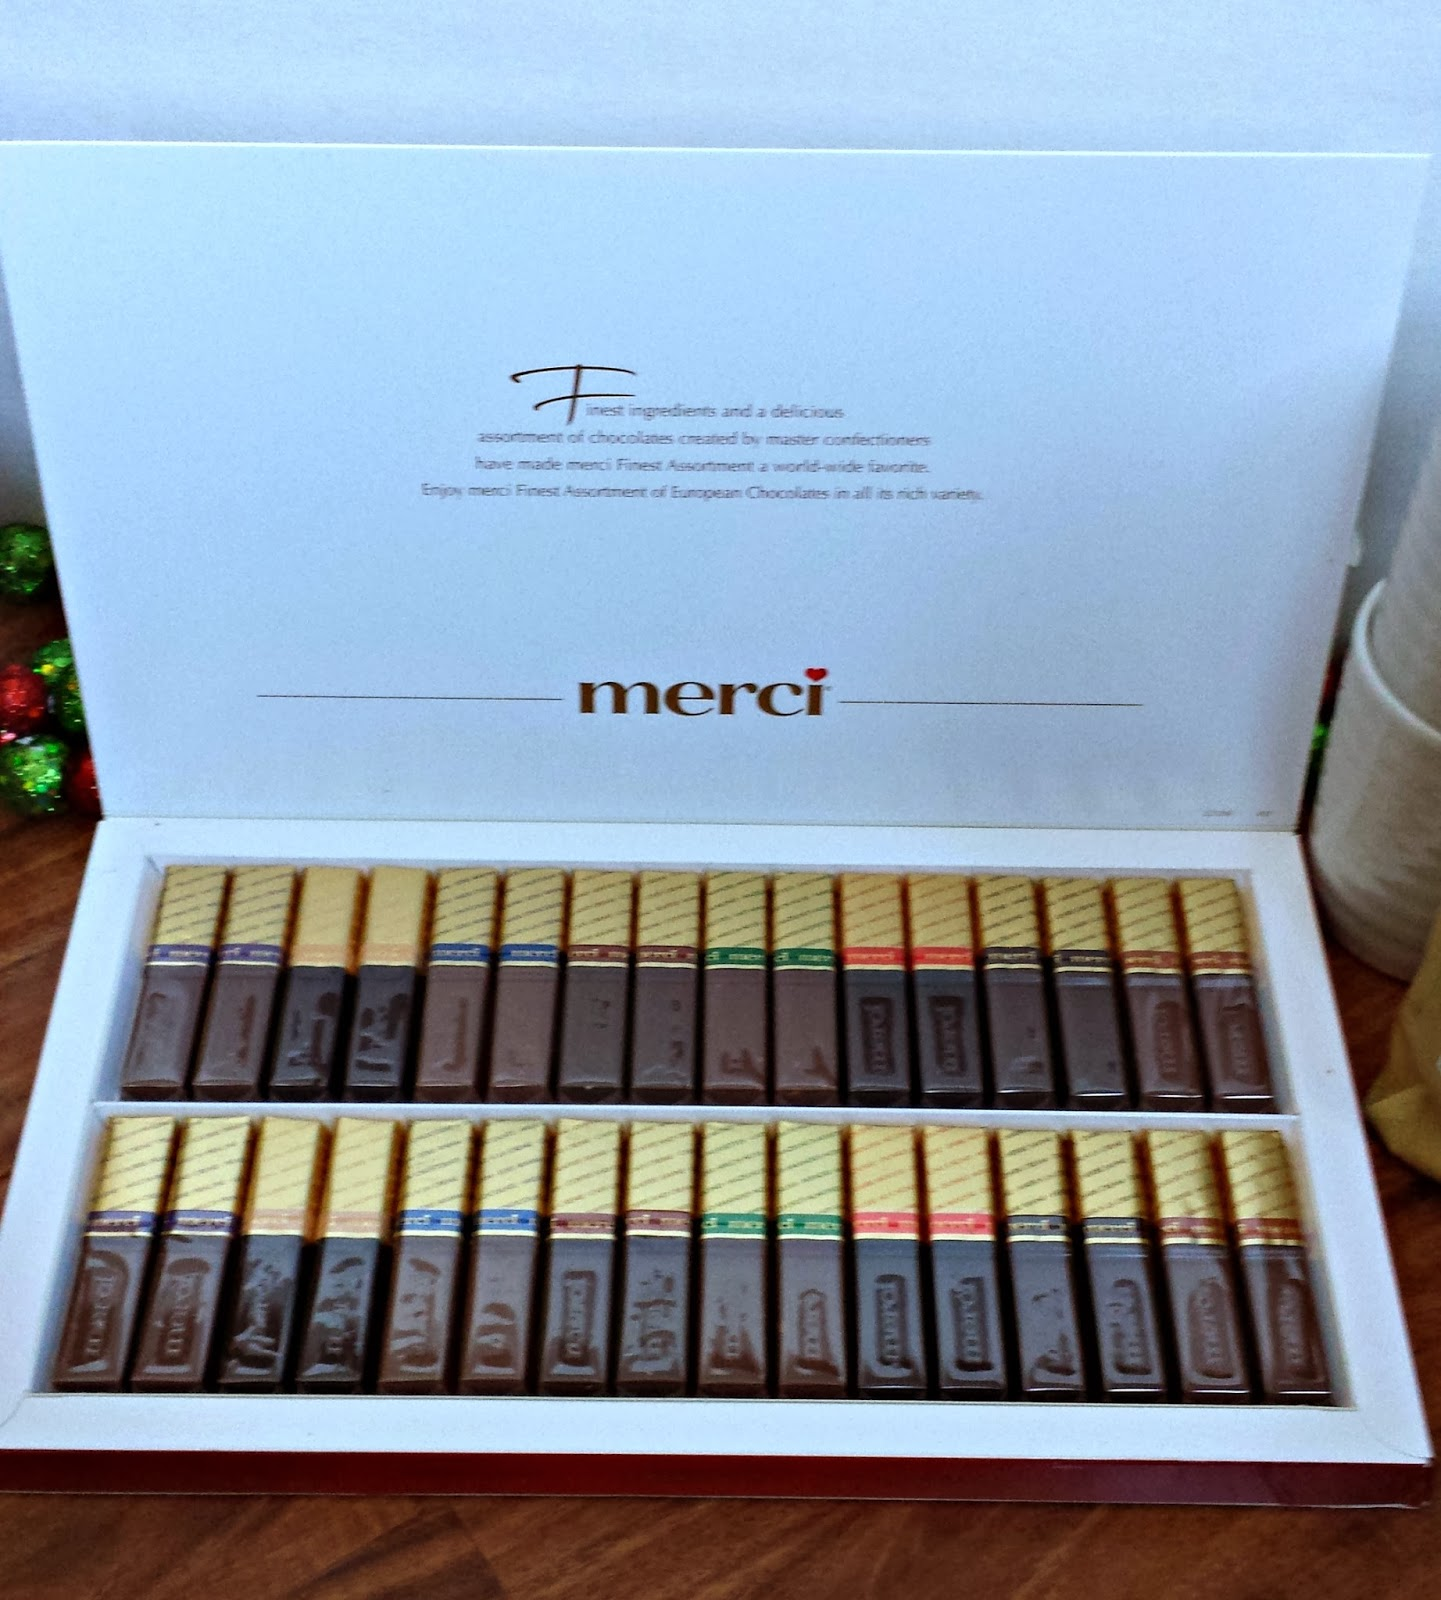 crazylou: Tasty Tuesday--merci Chocolates Giveaway